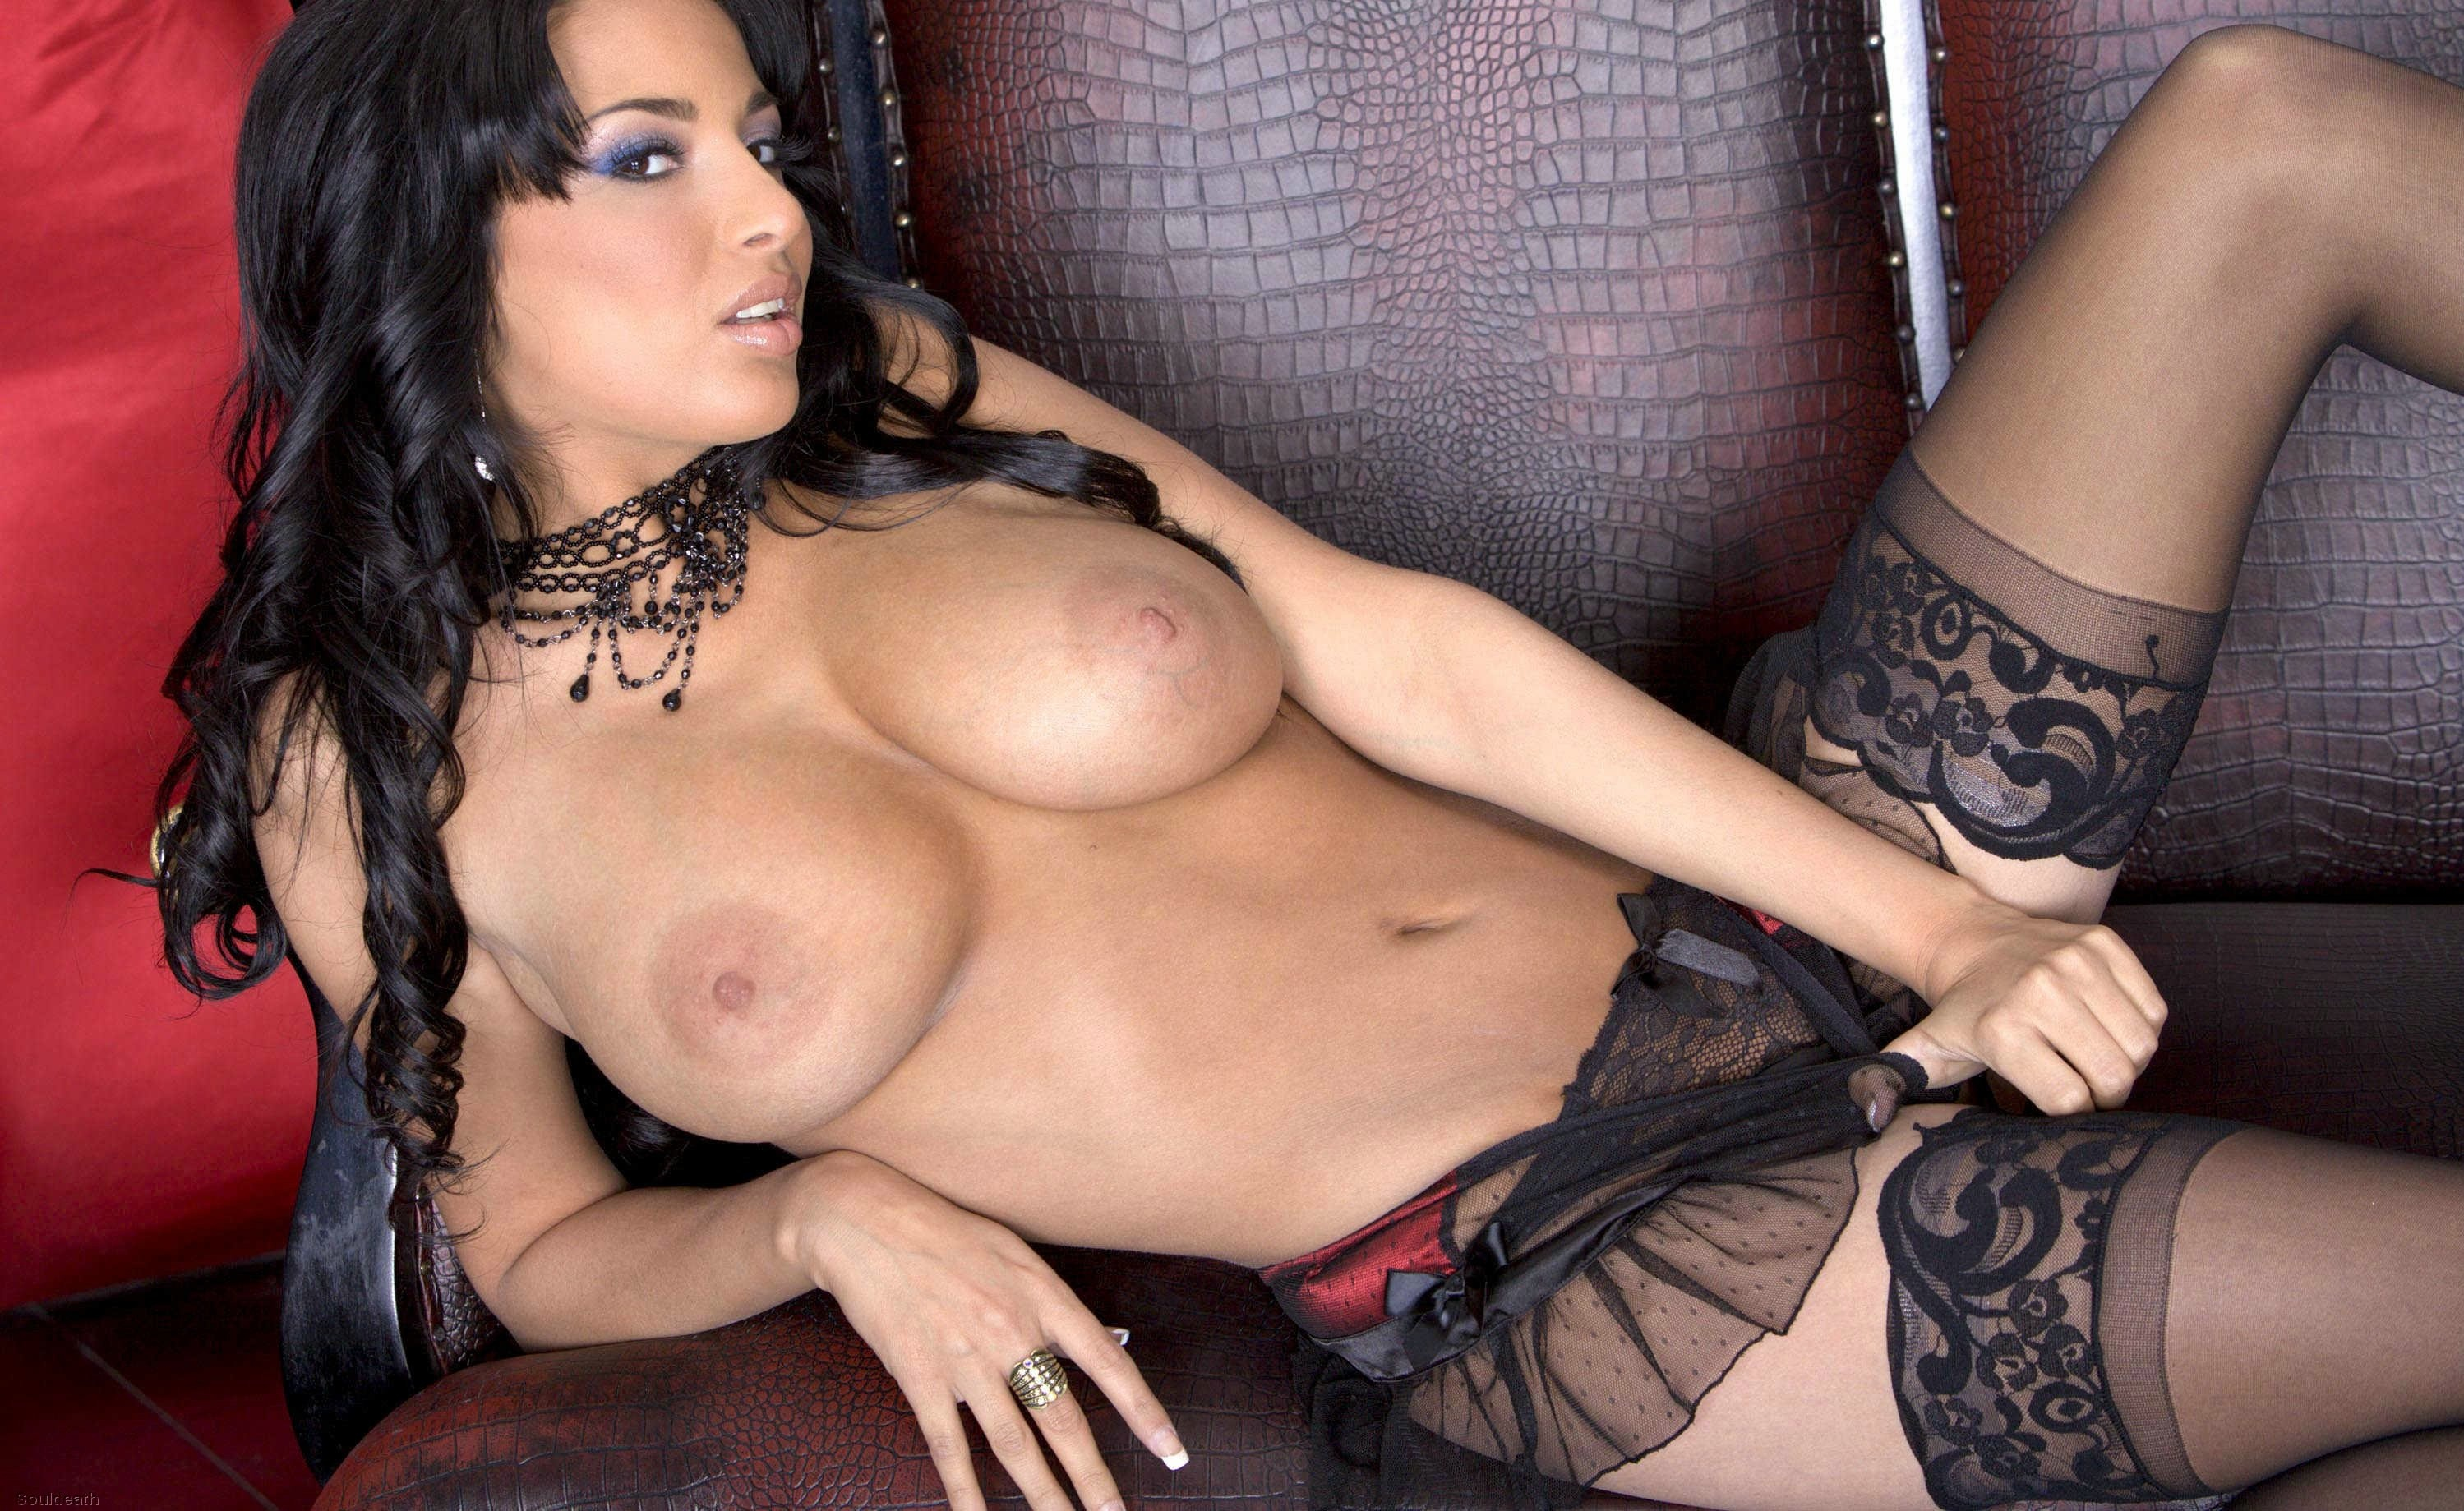 certainly not right delicious girl on dildo precisely does not